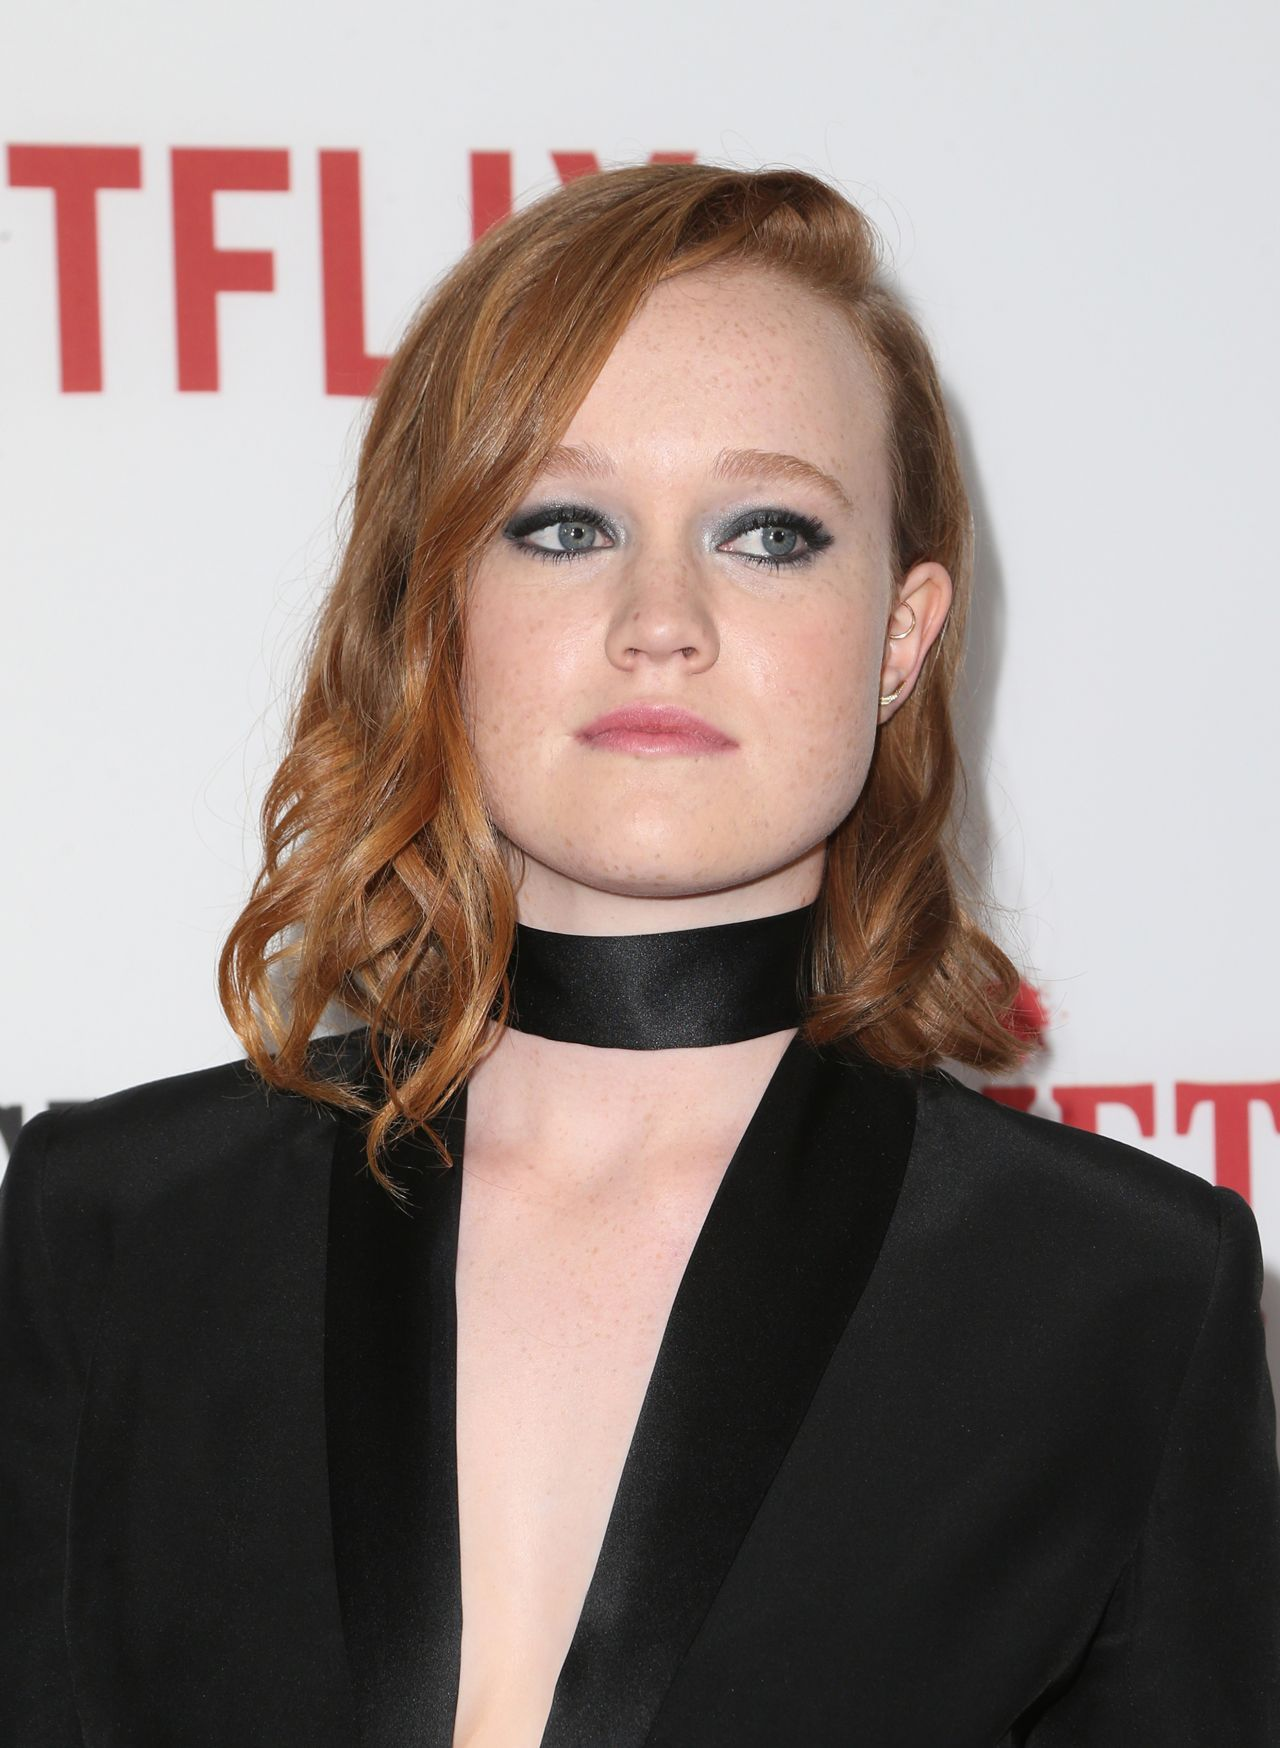 Liv Hewson nudes (93 photo), Sexy, Hot, Feet, cleavage 2015